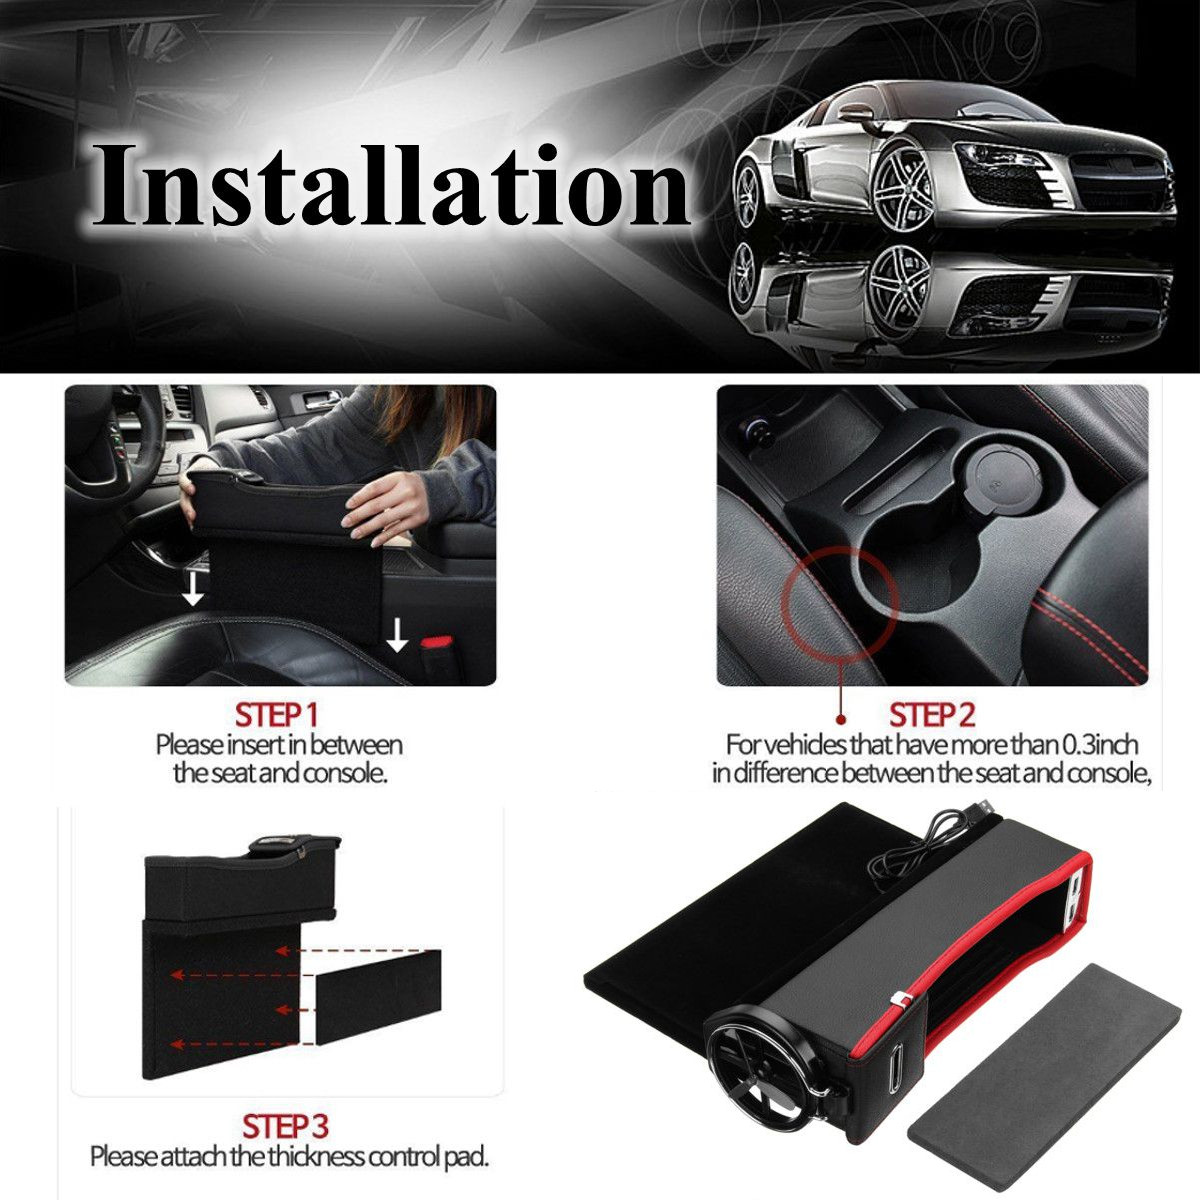 USB Charger Car Right Side Seat Crevice Storage Box Seat Gap Filler Organizer Catcher Box Cup Holder